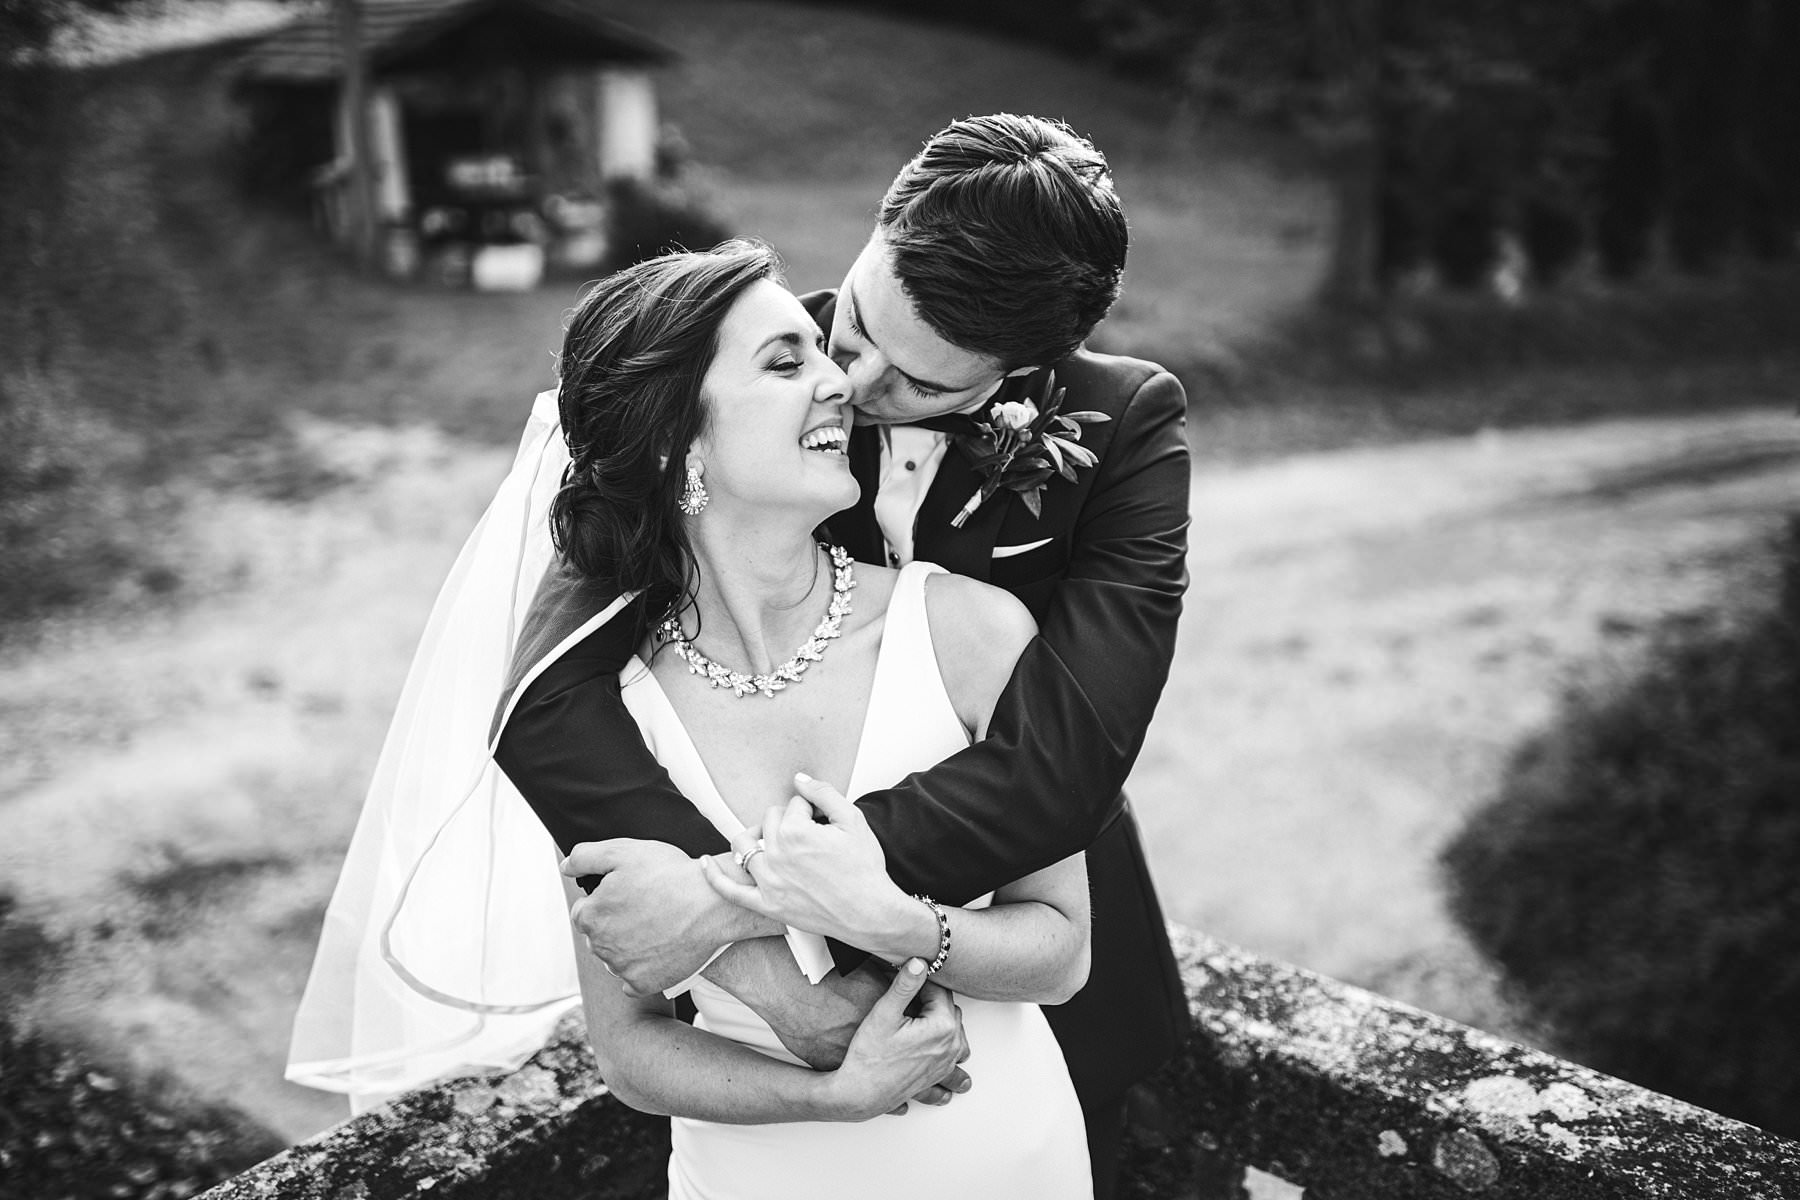 Heartfelt small wedding in the countryside of Tuscany. Beautiful, elegant and exciting bride and groom wedding portrait at Palazzo Vanneschi in Bucine